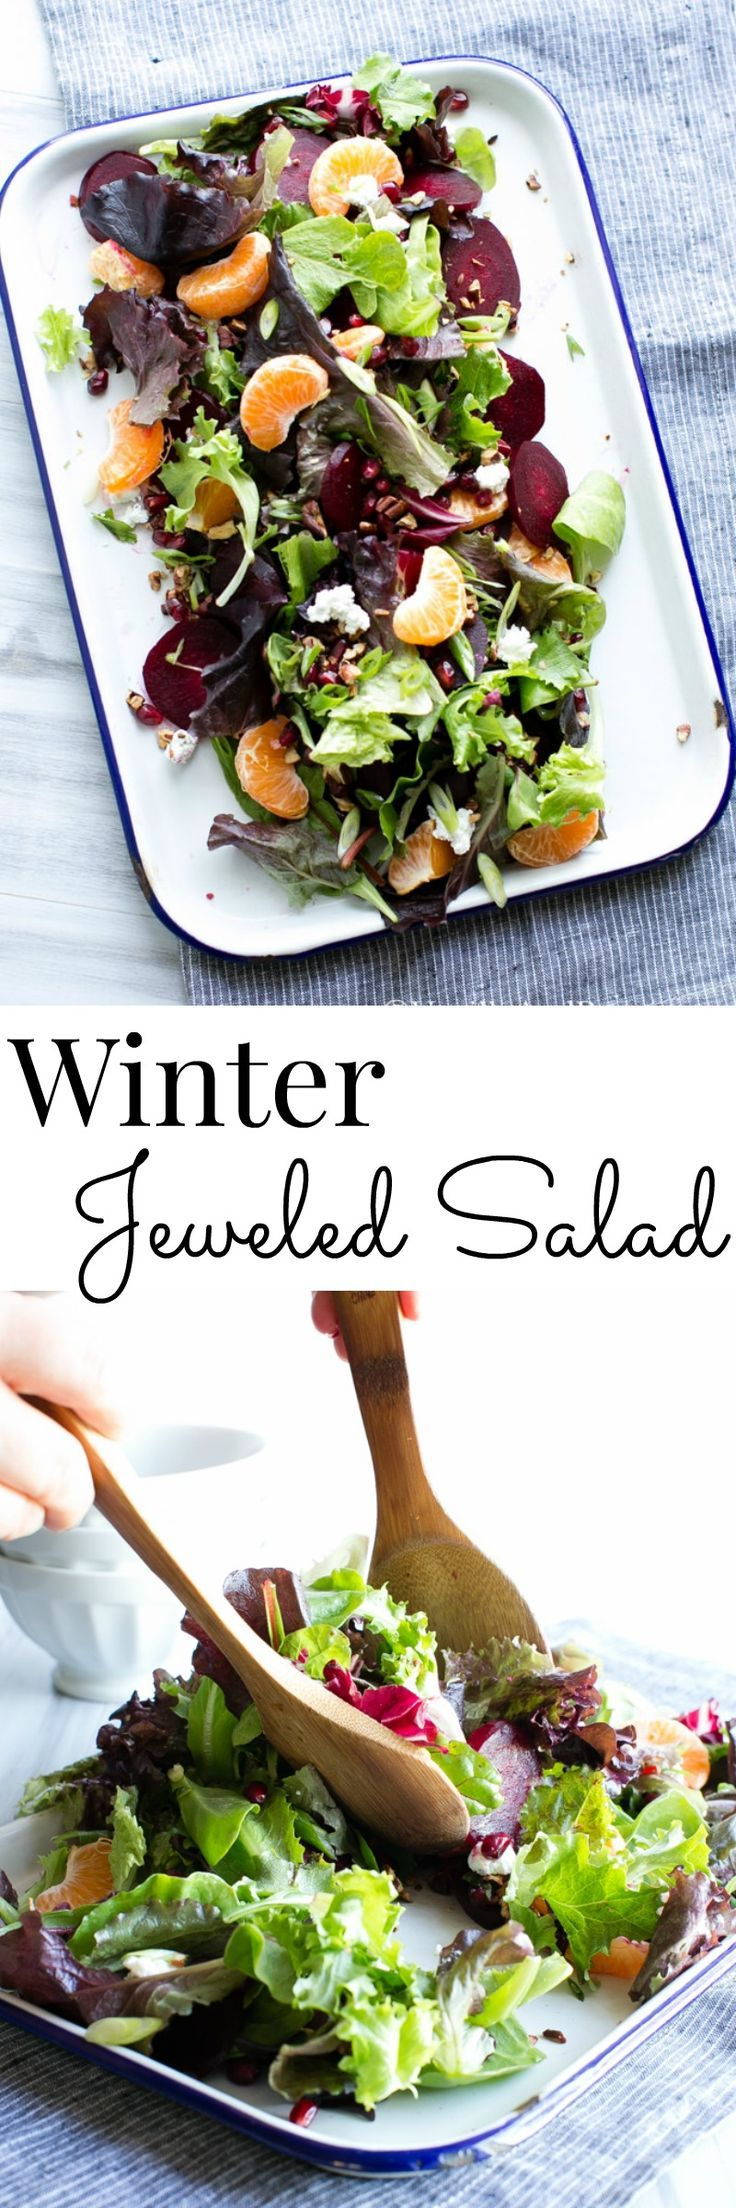 Citrus, pomegranate and roasted beets make up the jewels of this nourishing salad. It's finished with a citrus balsamic dressing. Vegan Option | Vanilla And Bean